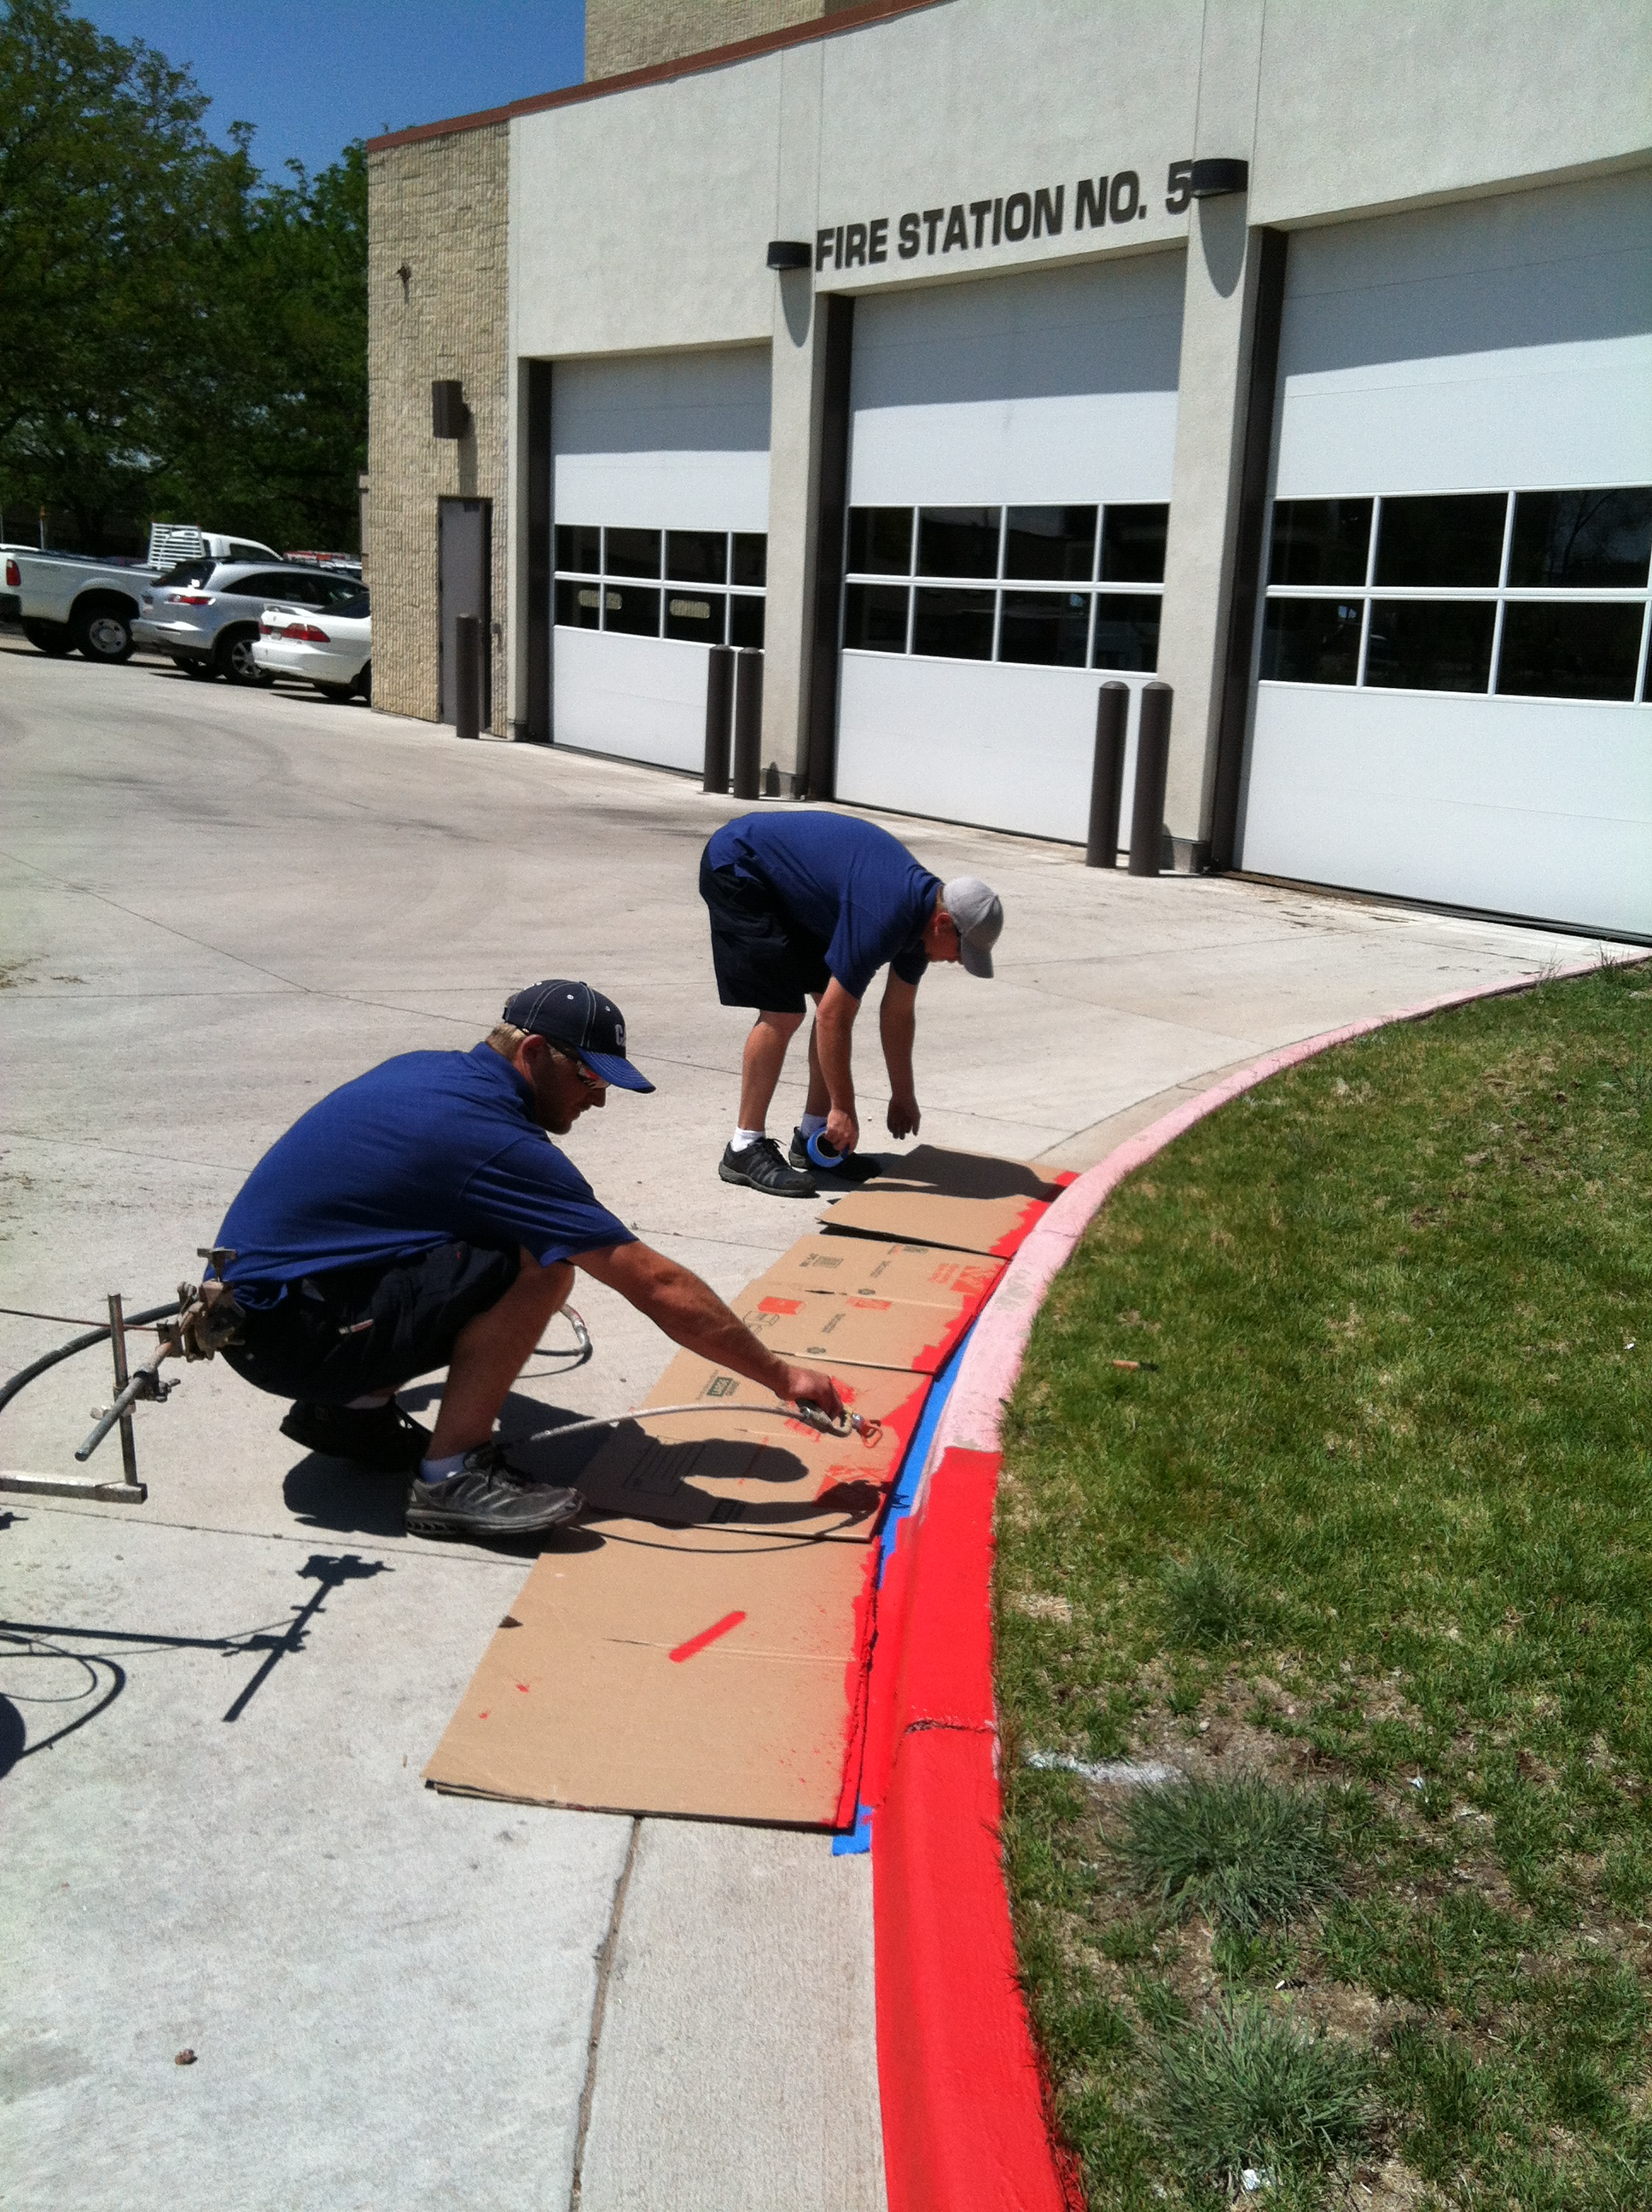 Public Works Painting Curb at Fire Station #5